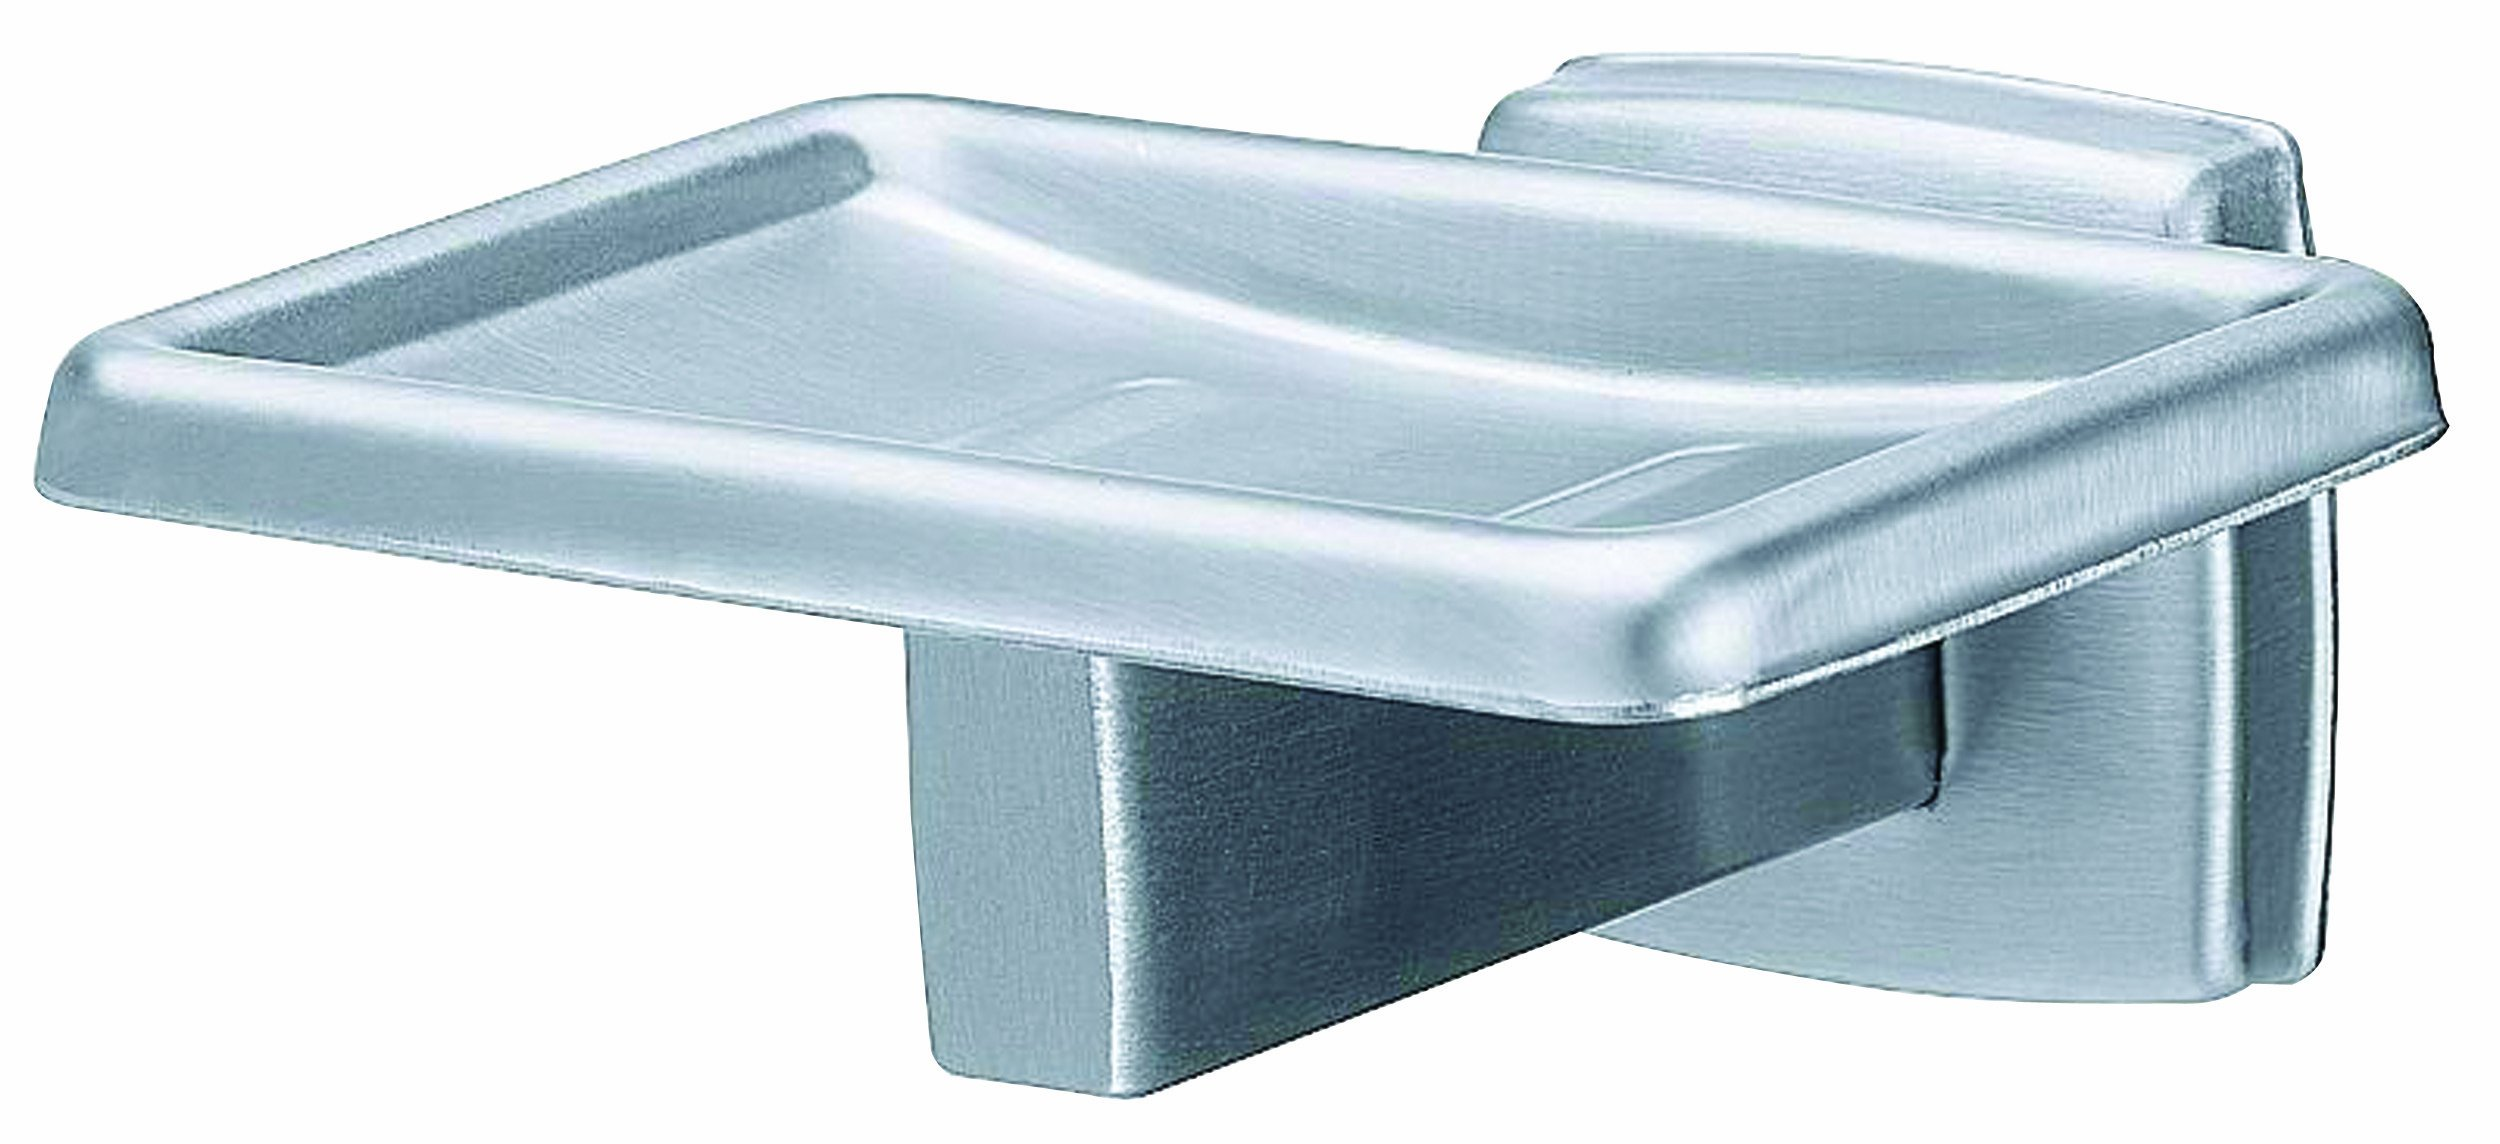 Bradley 9014-0000US Satin Stainless Steel Surface Mount Soap Dish, 2'' Width x 2'' Height